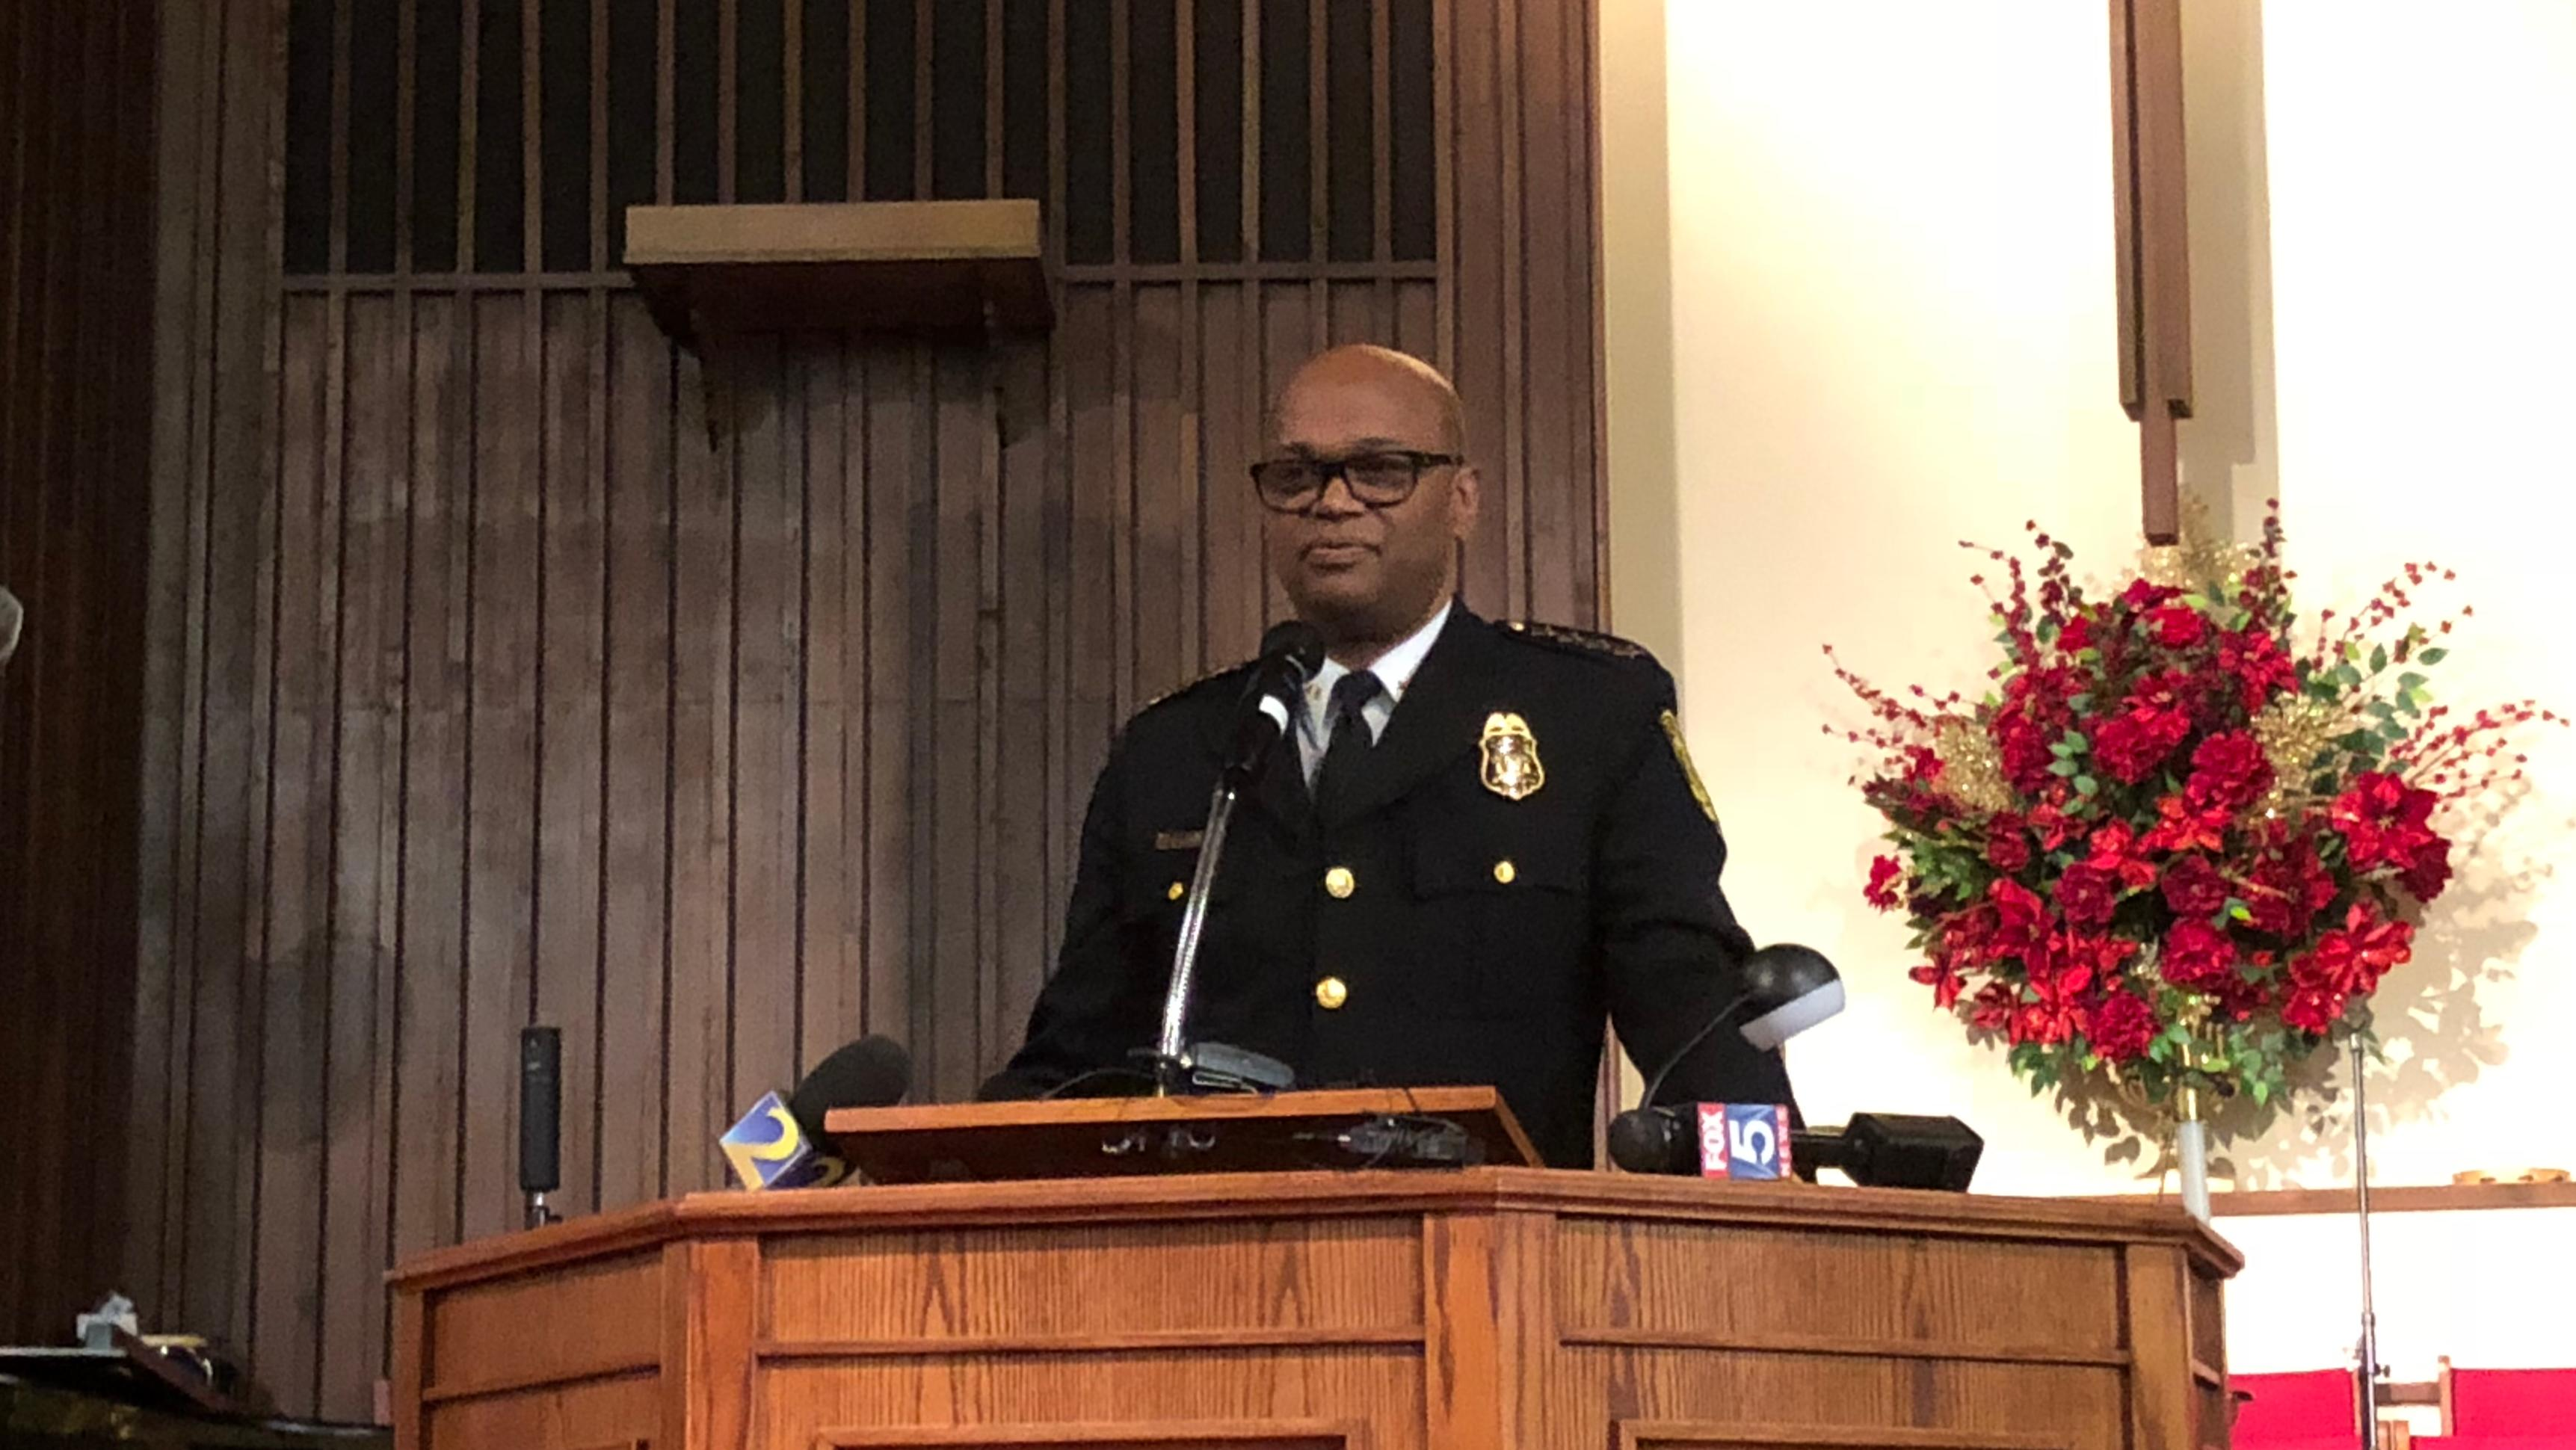 South Fulton police chief drives away from questions about fatal chase